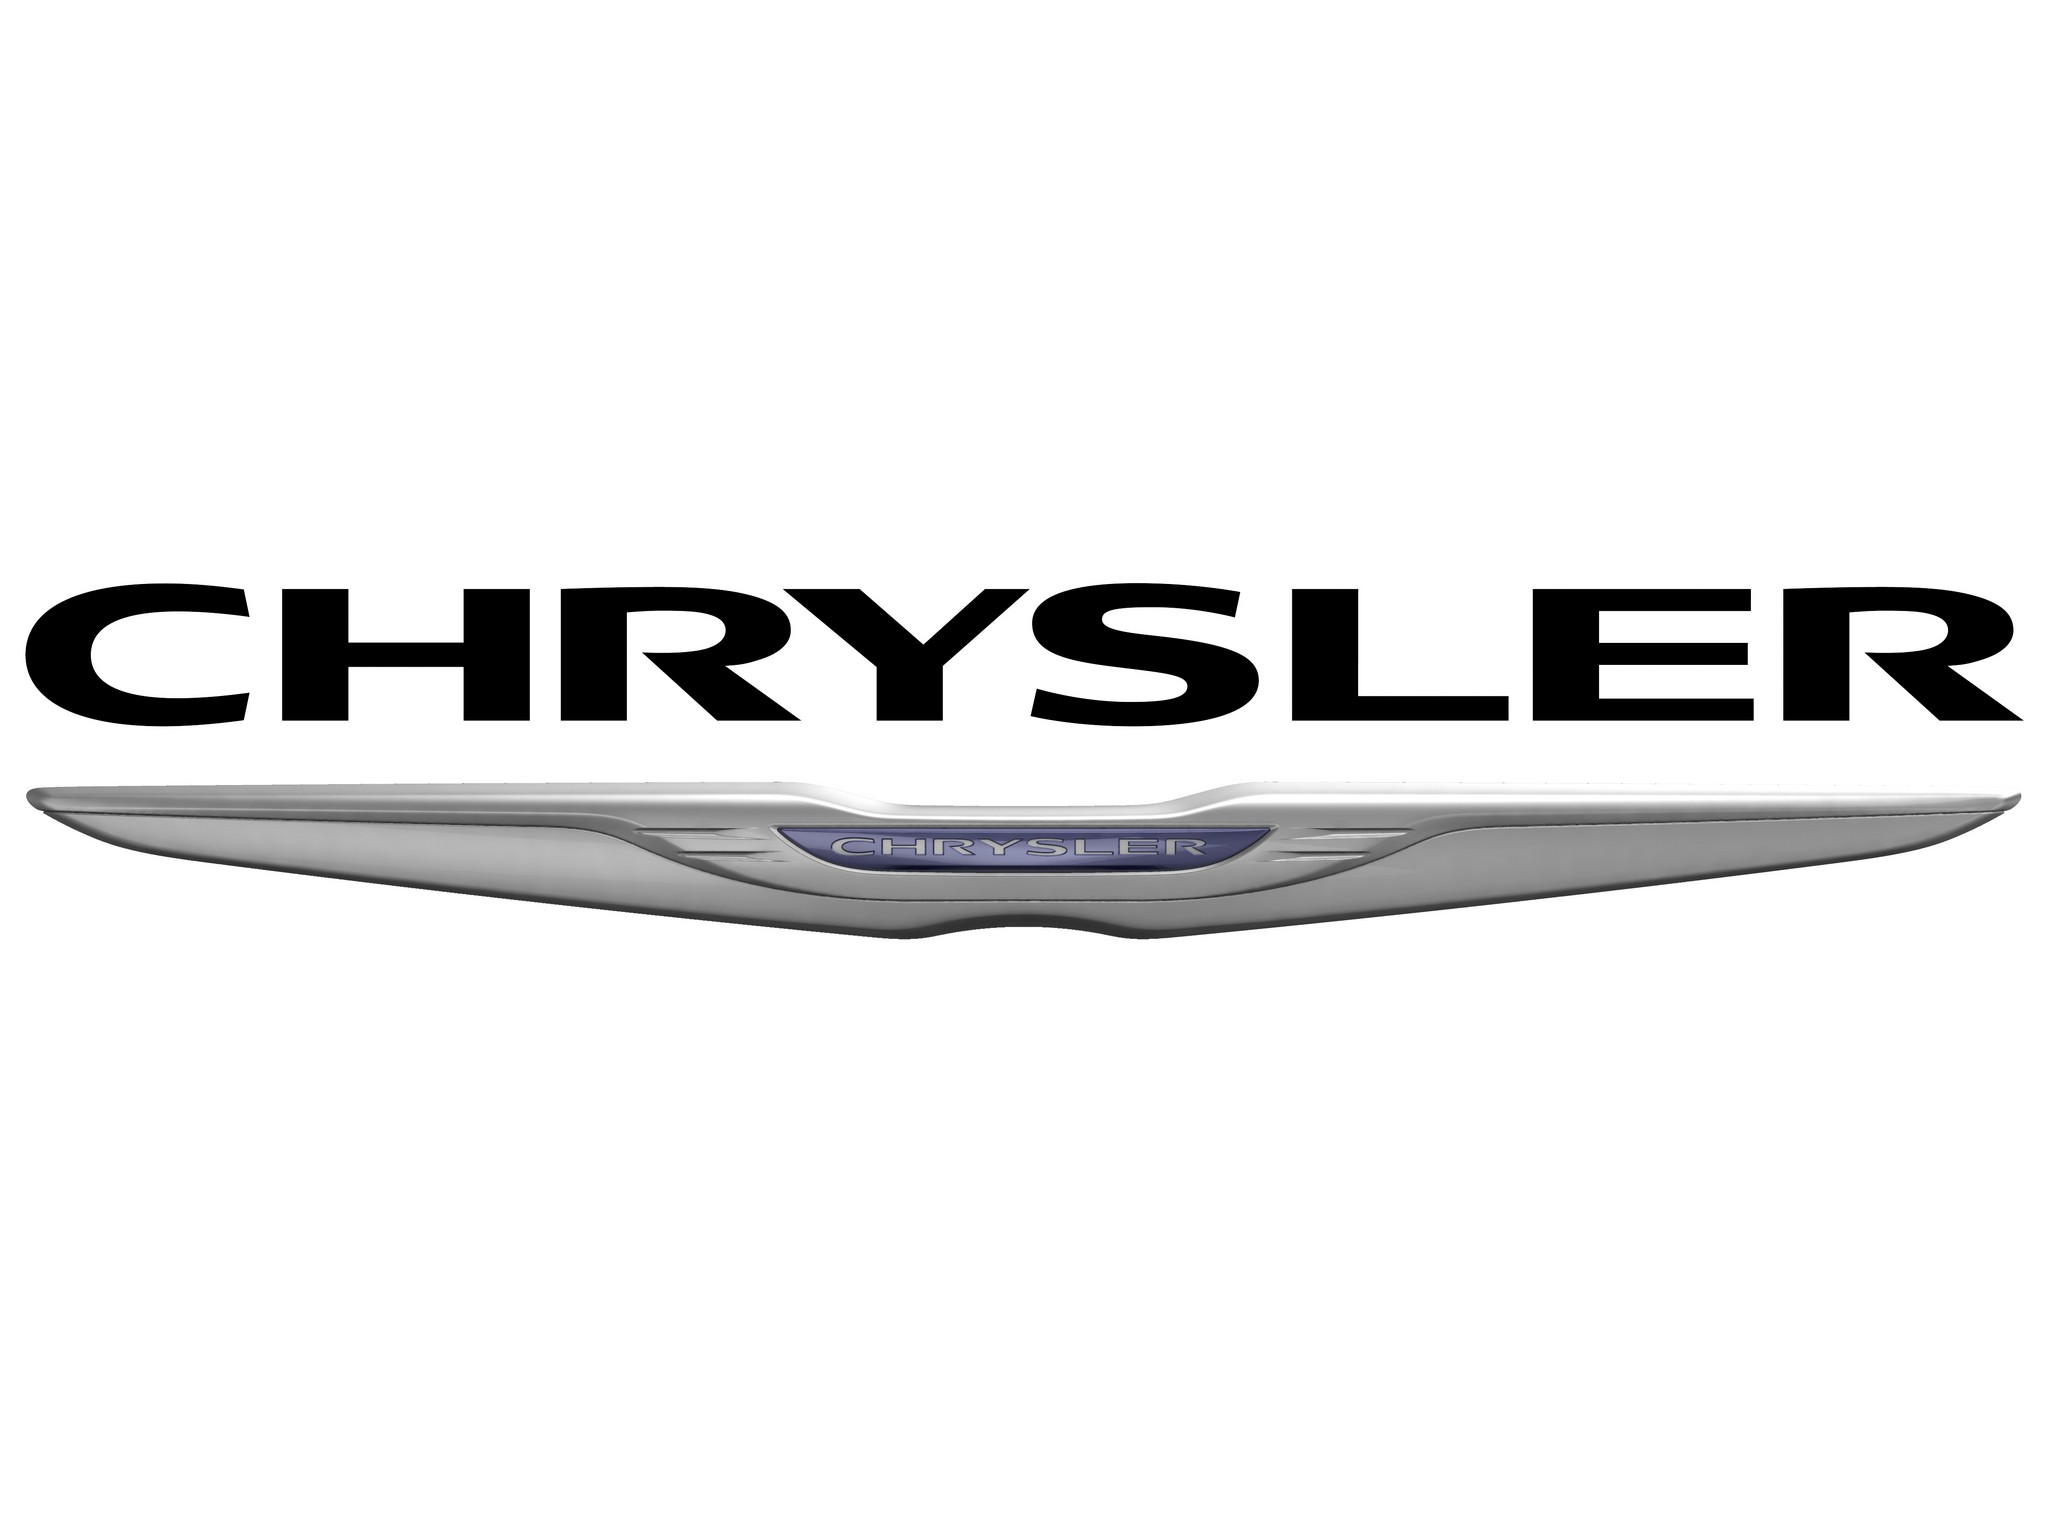 Chrysler Emblem Car Symbol